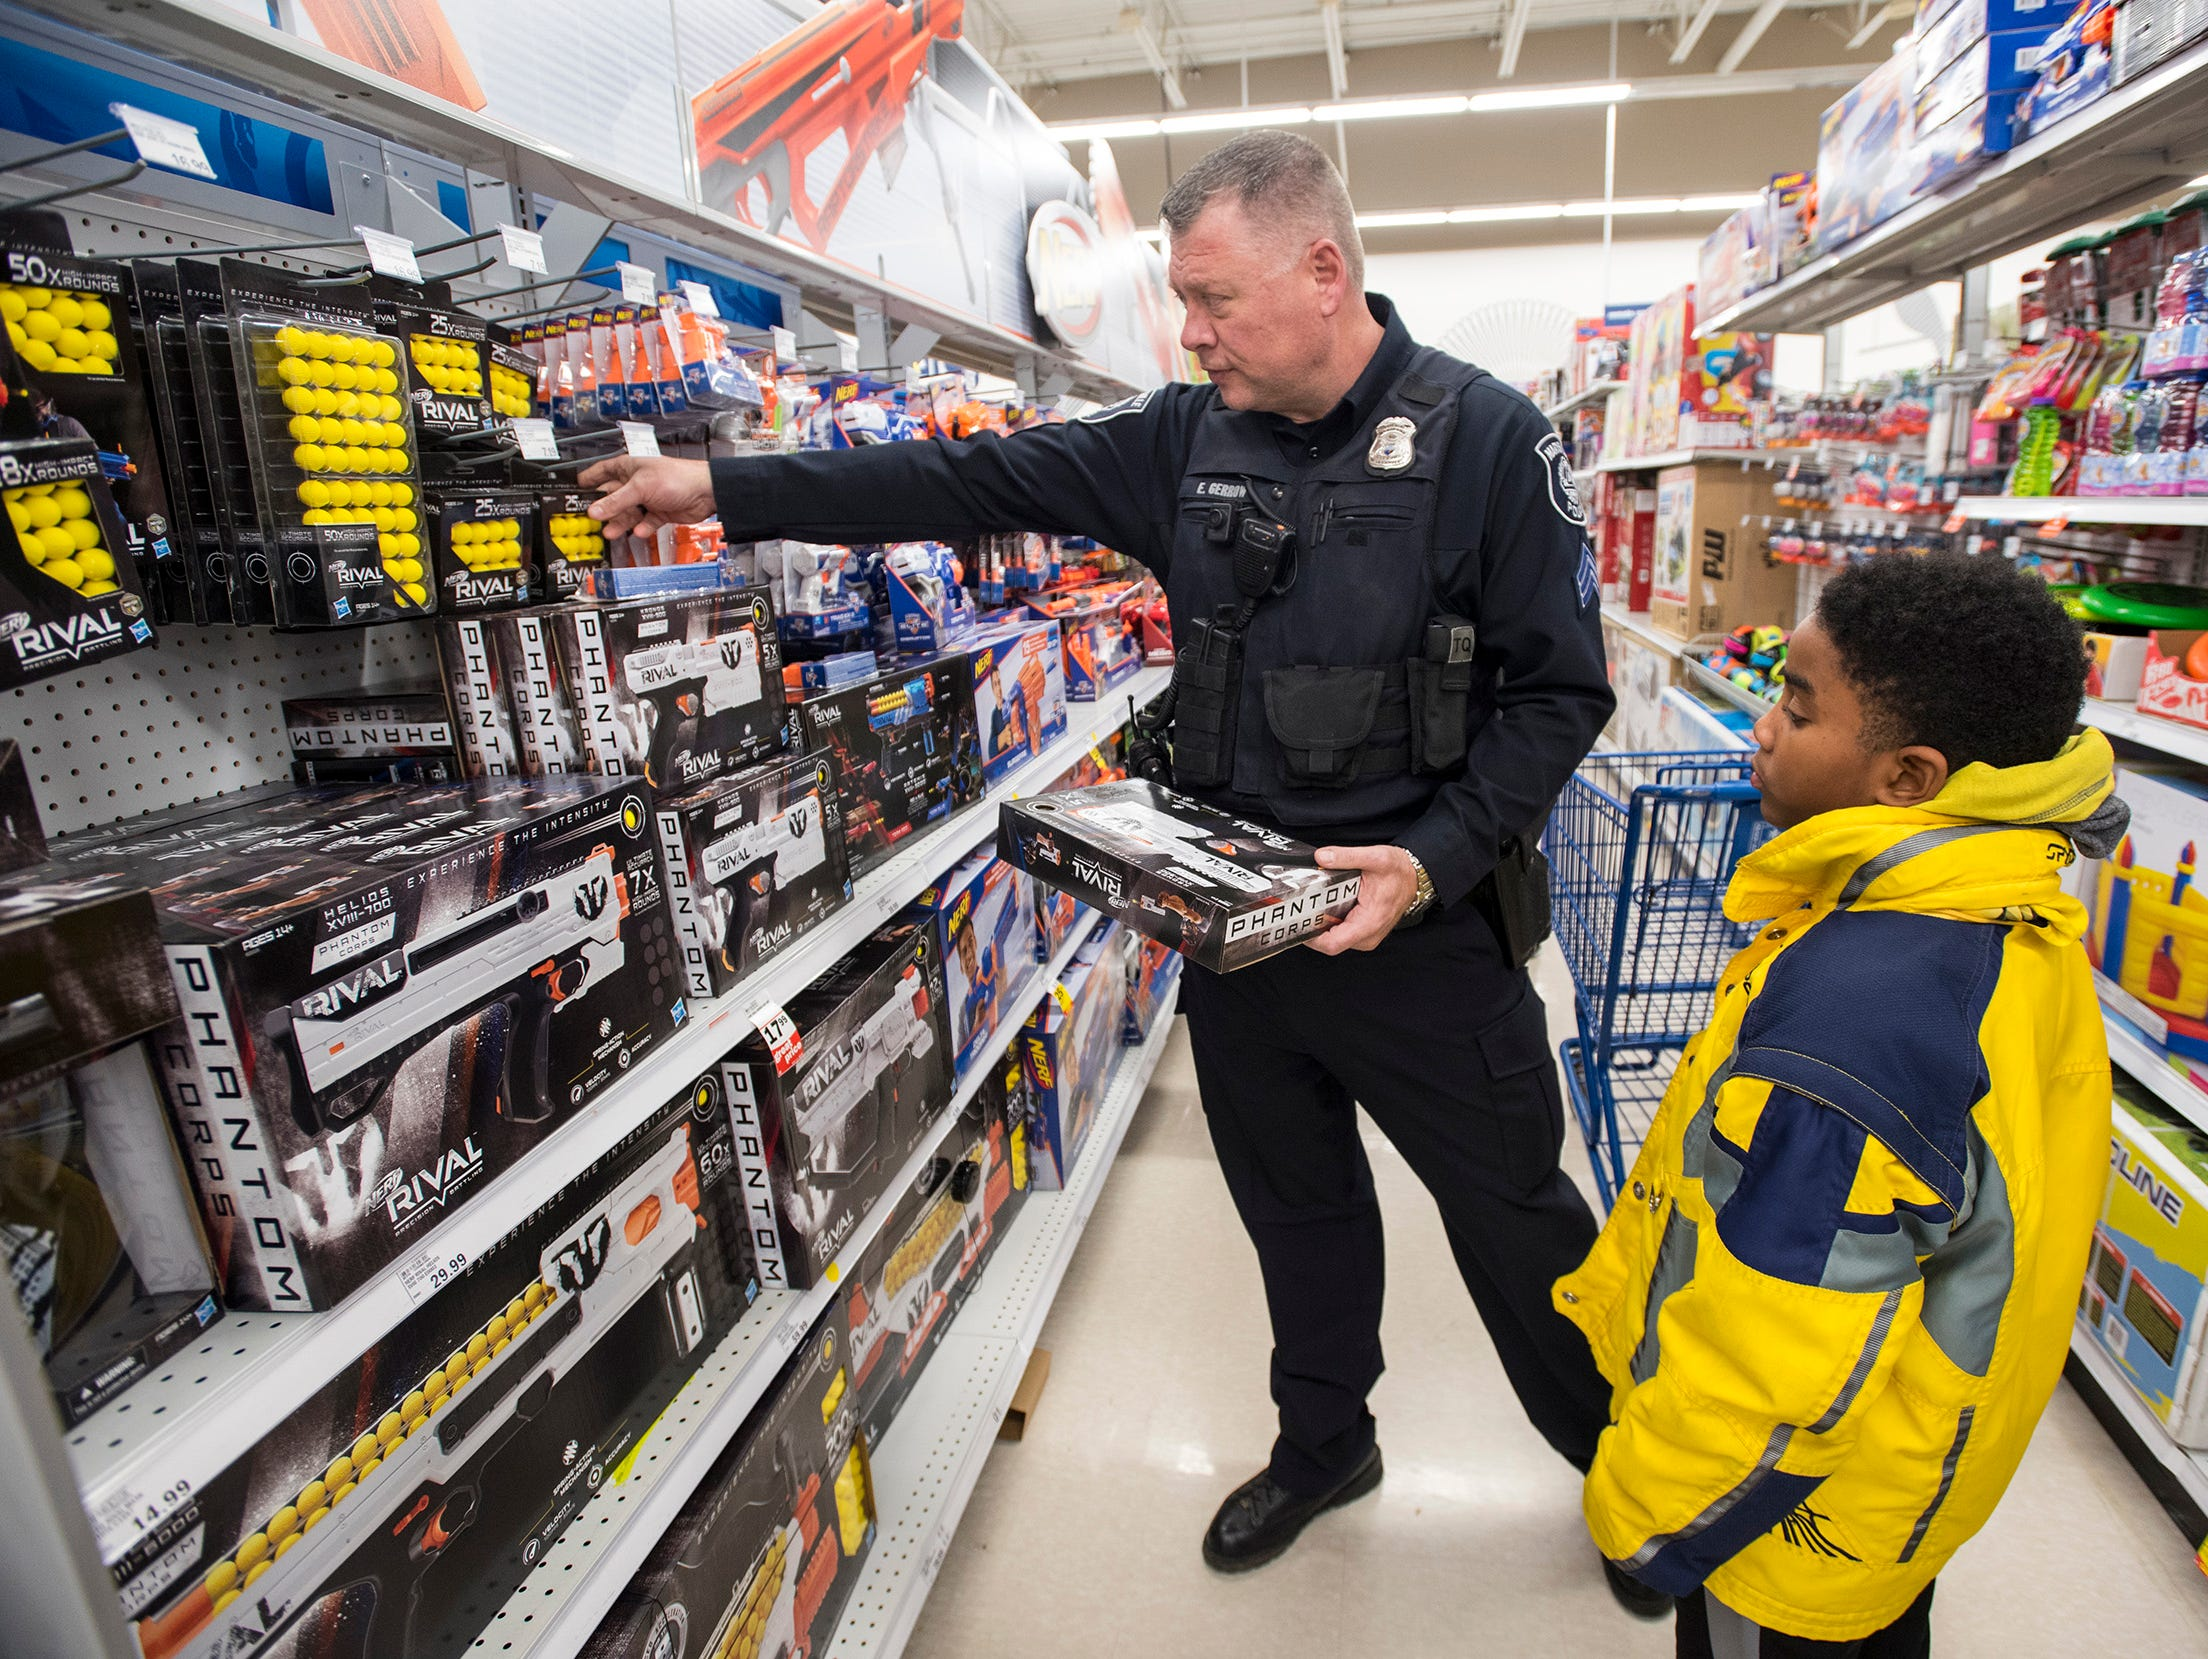 Marysville Police Sgt. Ed Gerrow, left, helps Cori'ye Hundley, 10, shop for Nerf guns at Christmas with a Cop Tuesday, Dec. 11, 2018 at Meijer in Fort Gratiot.